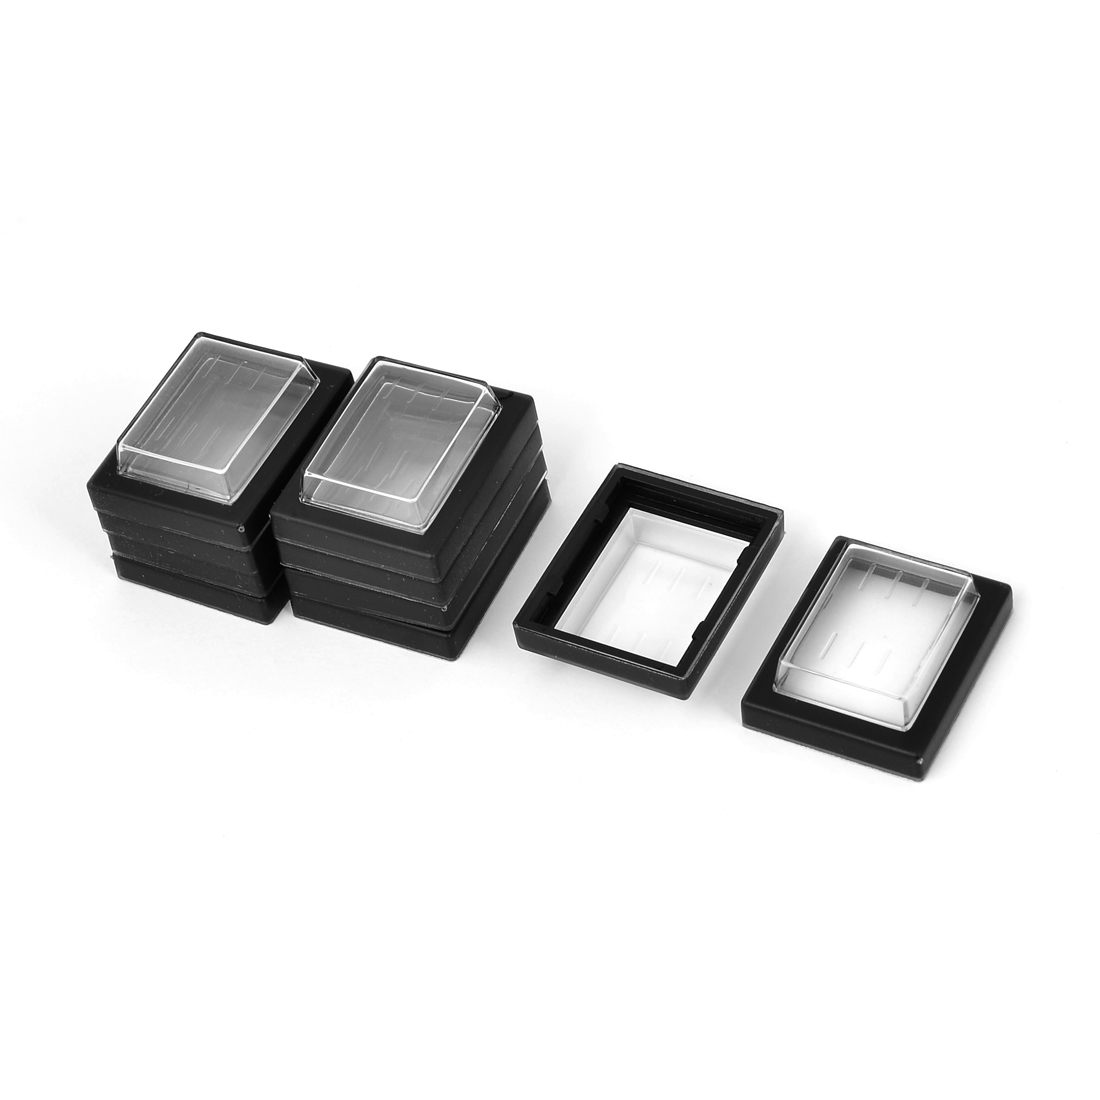 Switch Splash Proof Cover Hat Frame 32mm x 30mm x 11mm Black Clear 10pcs